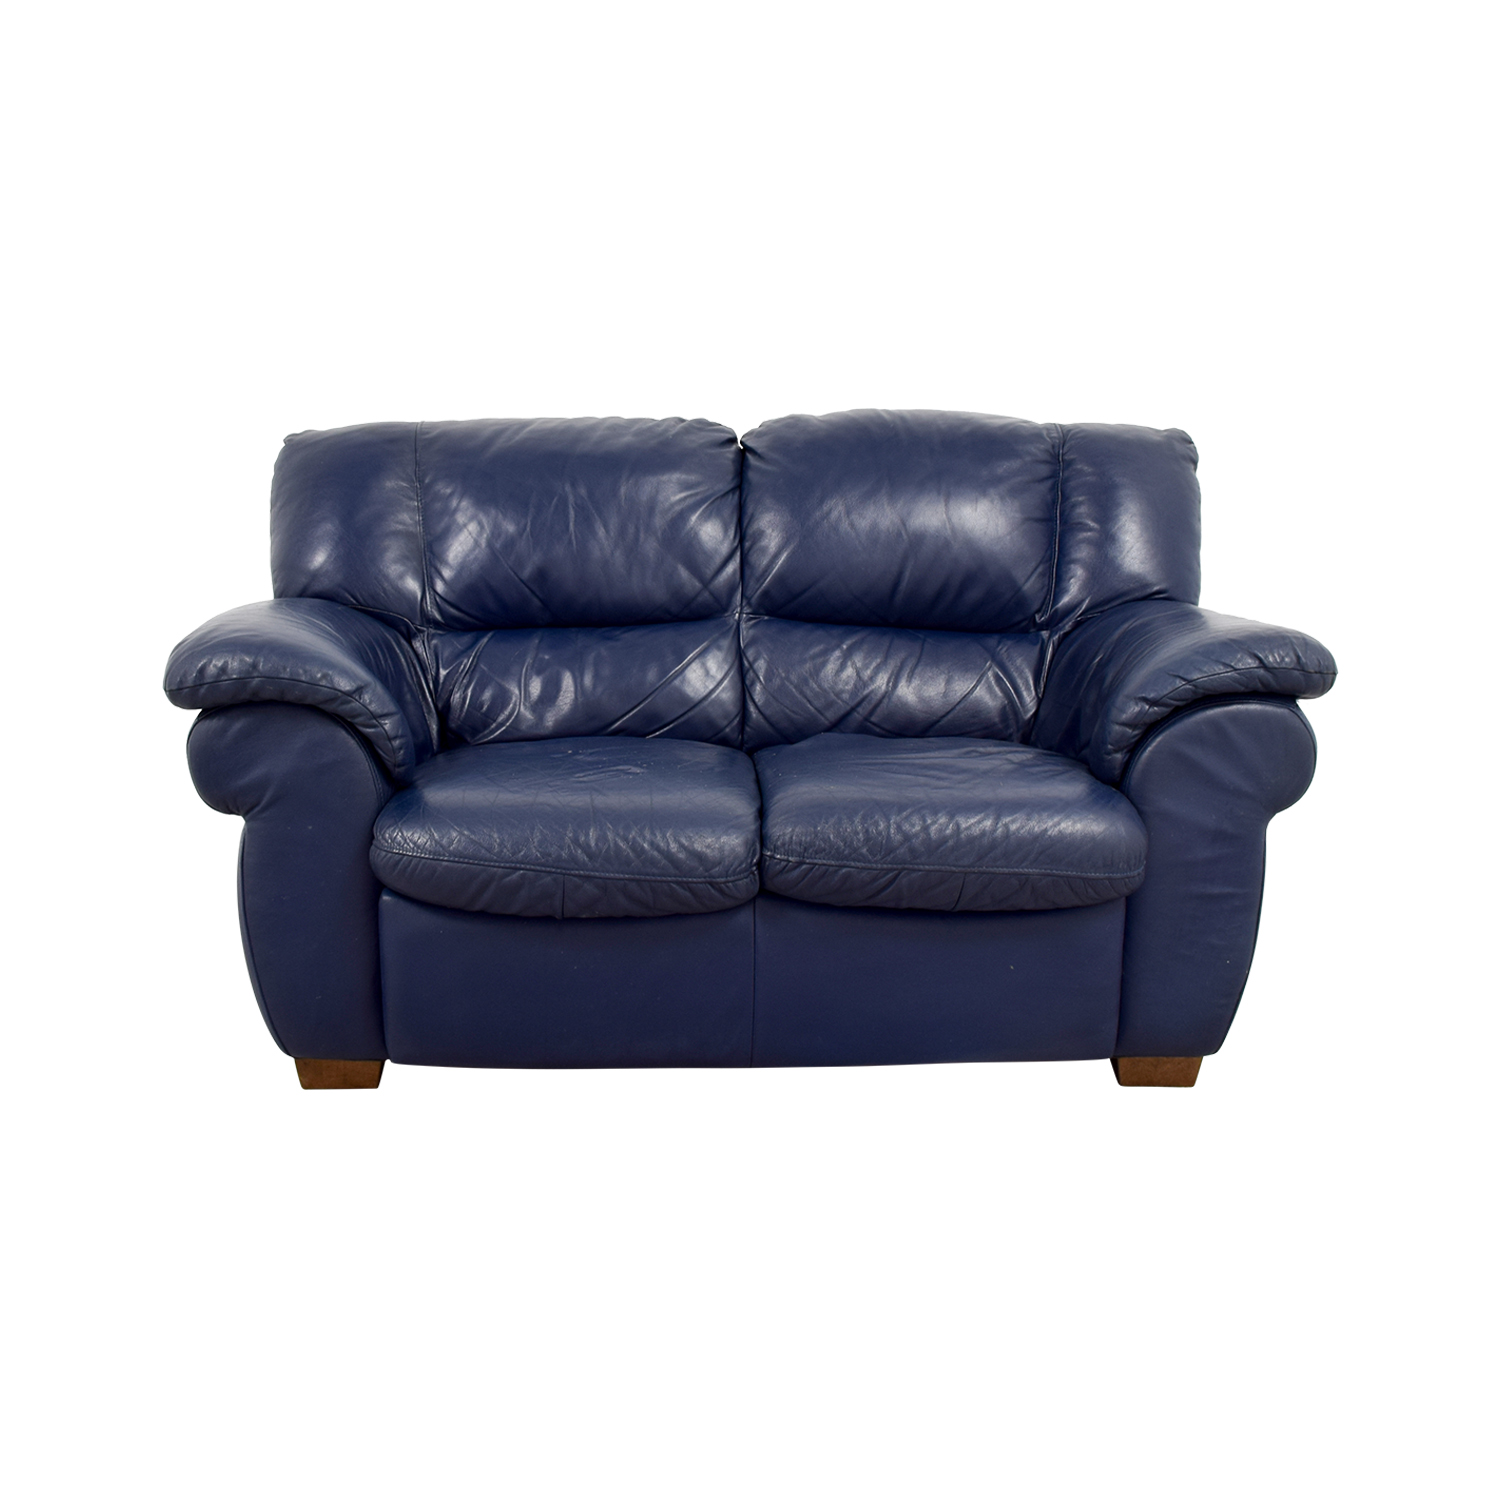 80% OFF - Macy\'s Macy\'s Navy Blue Leather Loveseat / Sofas